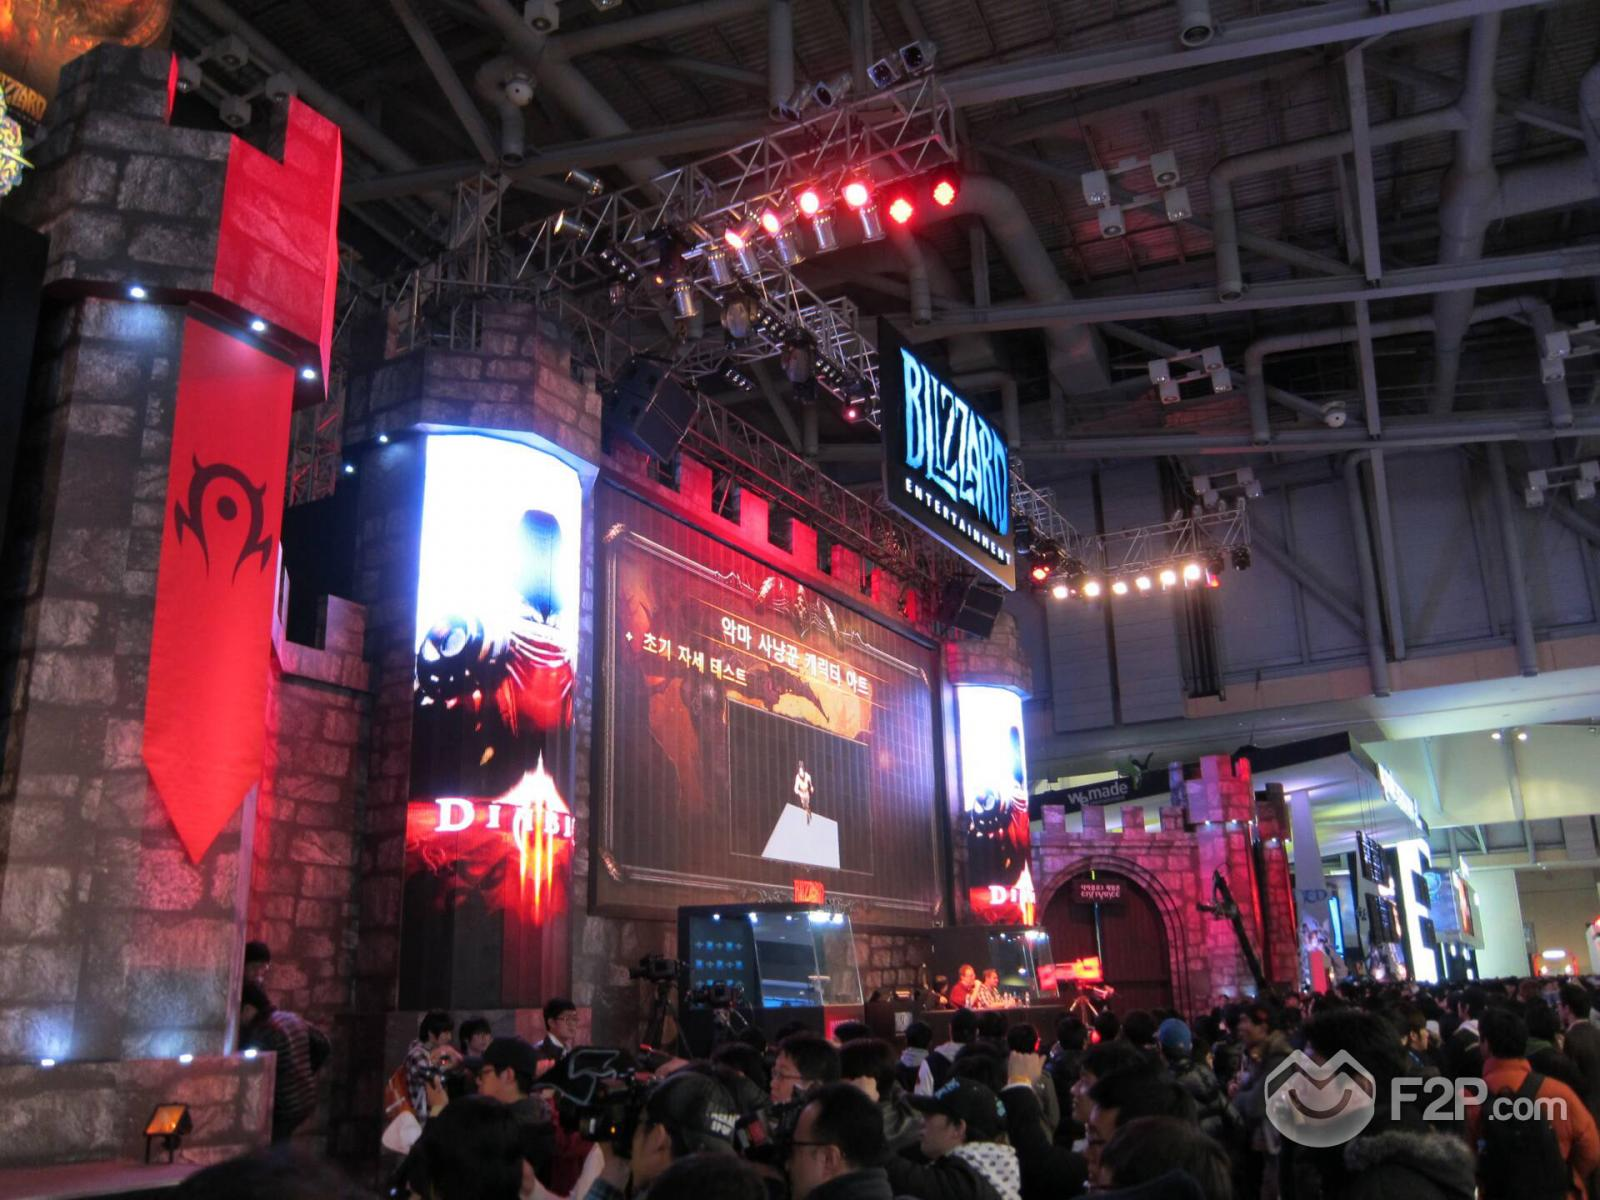 Click image for larger version. Name:	Gstar 2010 F2P first day 8.jpg Views:	62 Size:	219.8 KB ID:	1875